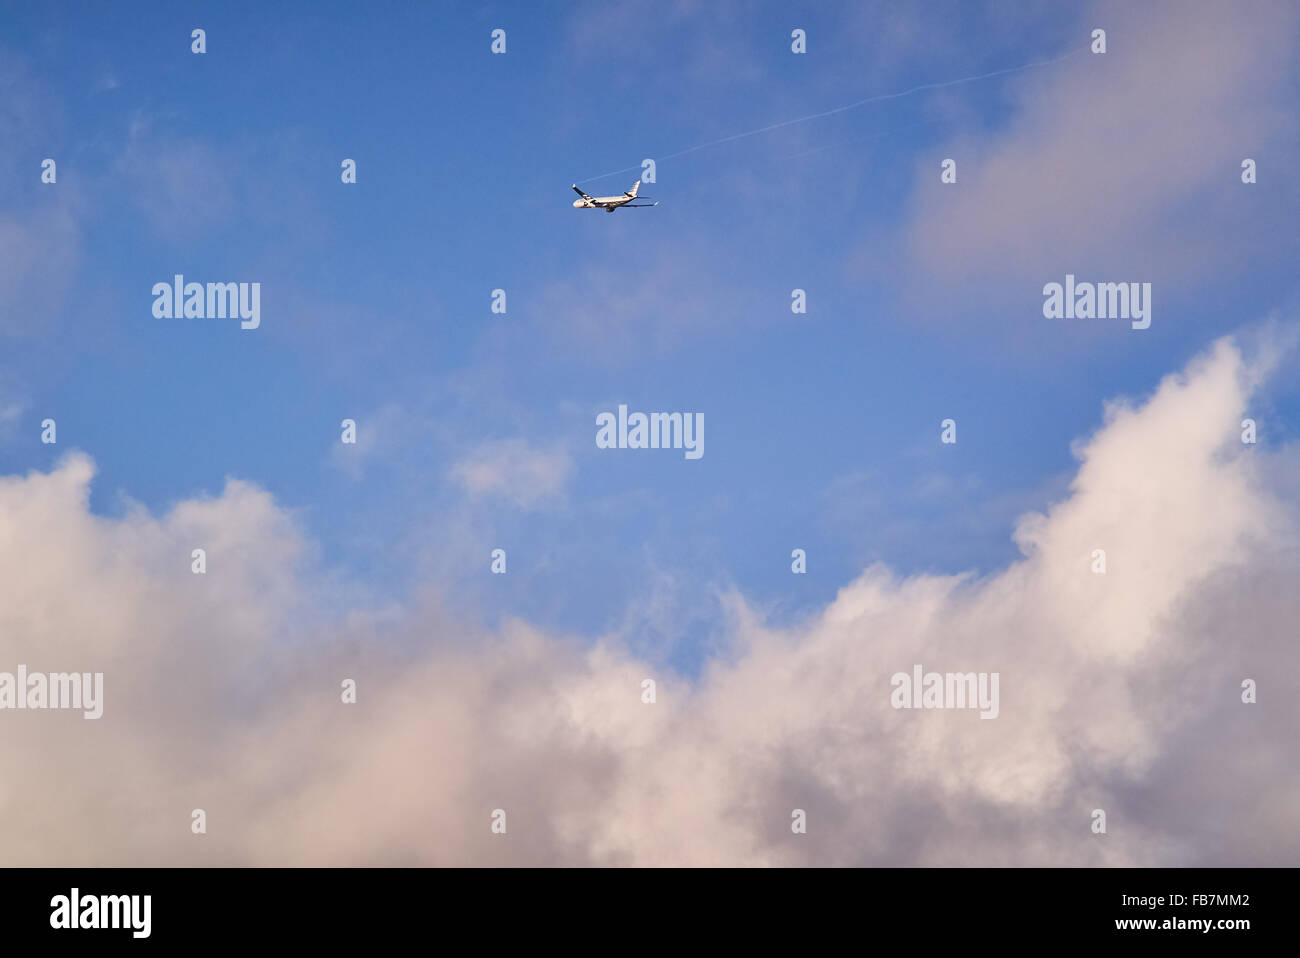 Ailriner flying through clouds - Stock Image